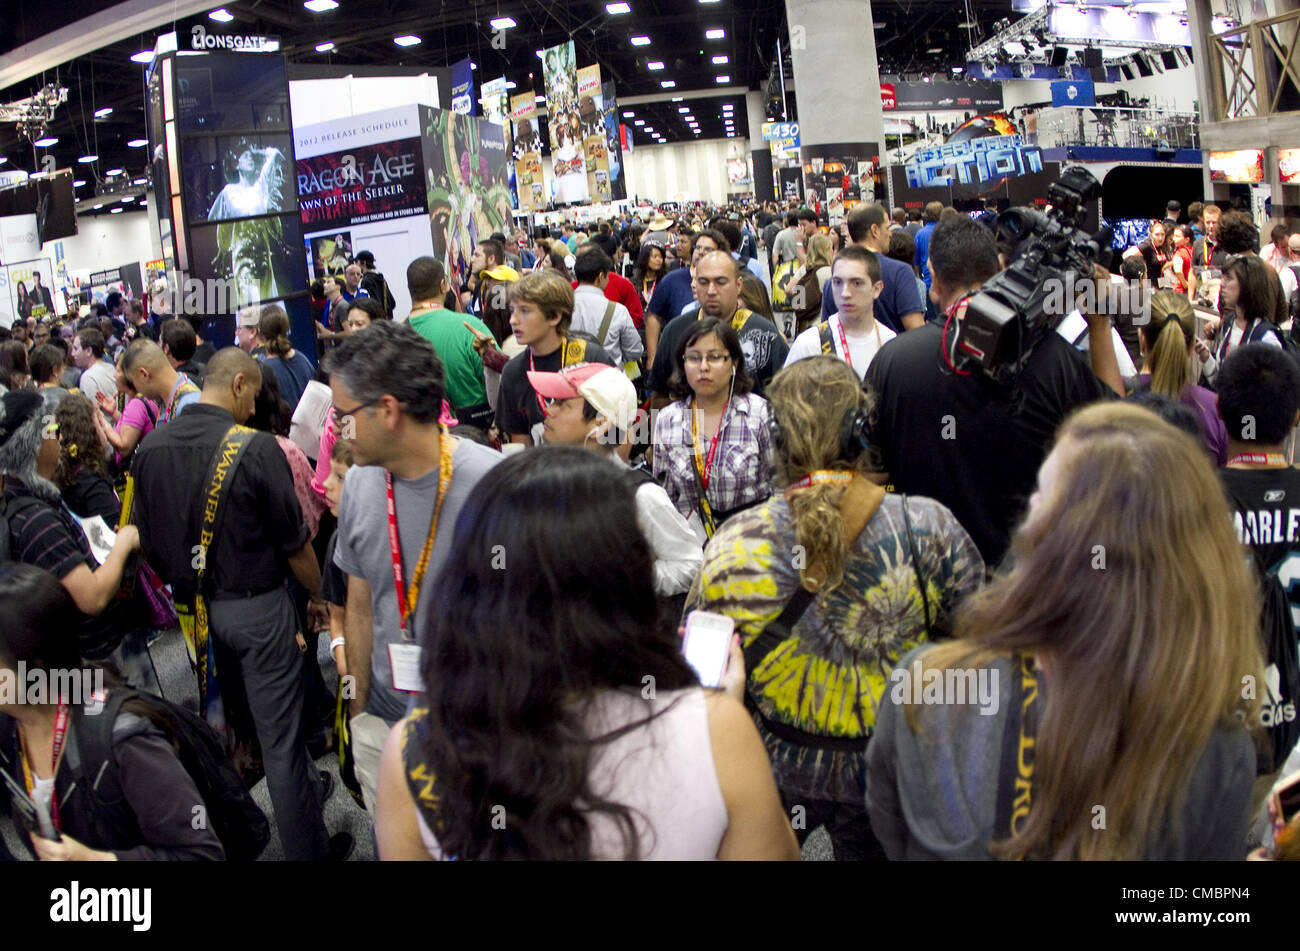 July 11, 2012 - San Diego, California, U.S - Attendees gather in the Exhibit Hall for Preview Night at Comic-Con - Stock Image